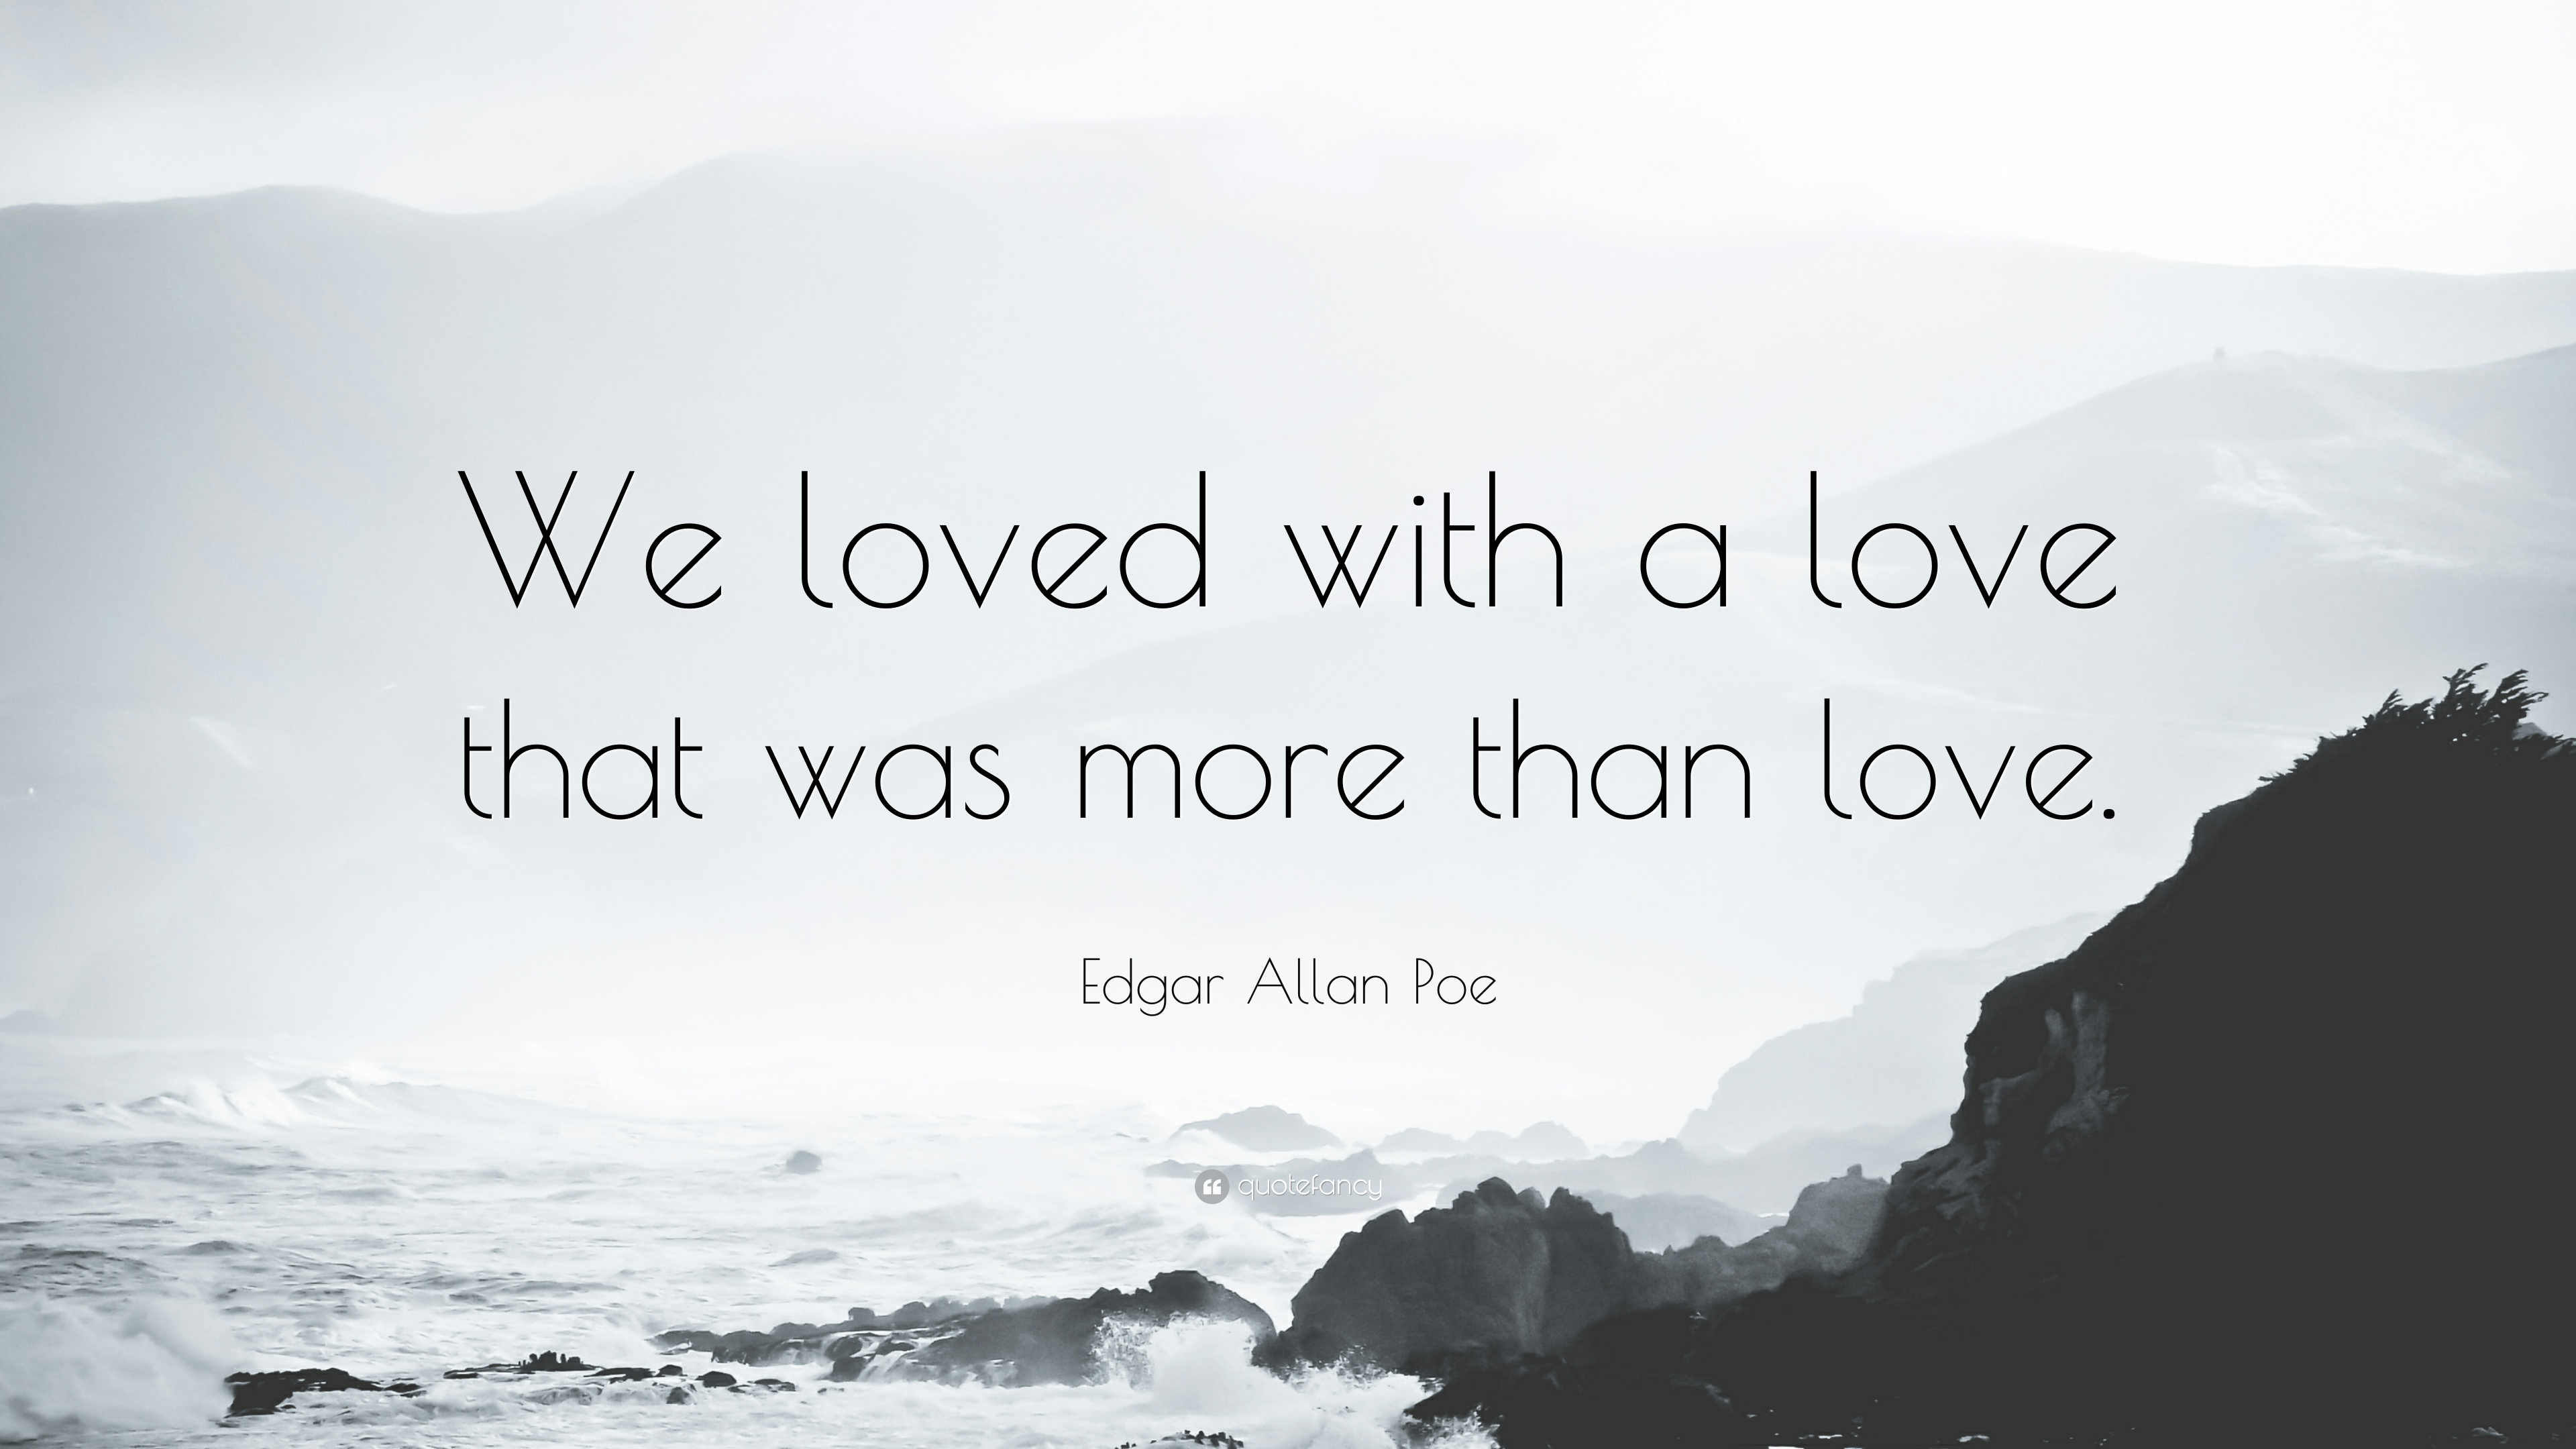 Exceptional Edgar Allan Poe Quote: U201cWe Loved With A Love That Was More Than Love